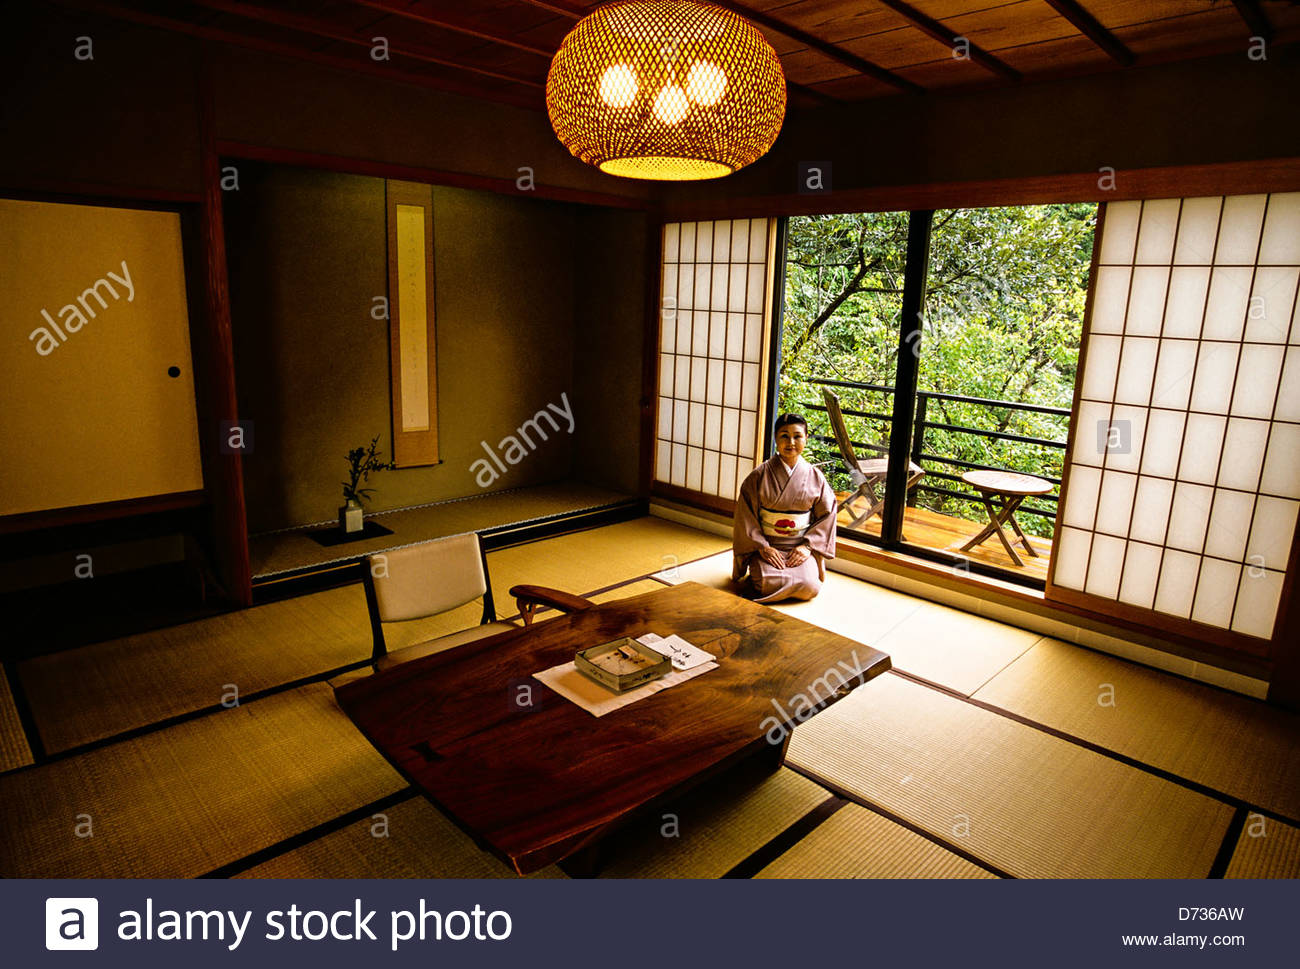 Superb Guest Room Kayotei Ryokan Traditional Japanese Style Inn Download Free Architecture Designs Xaembritishbridgeorg